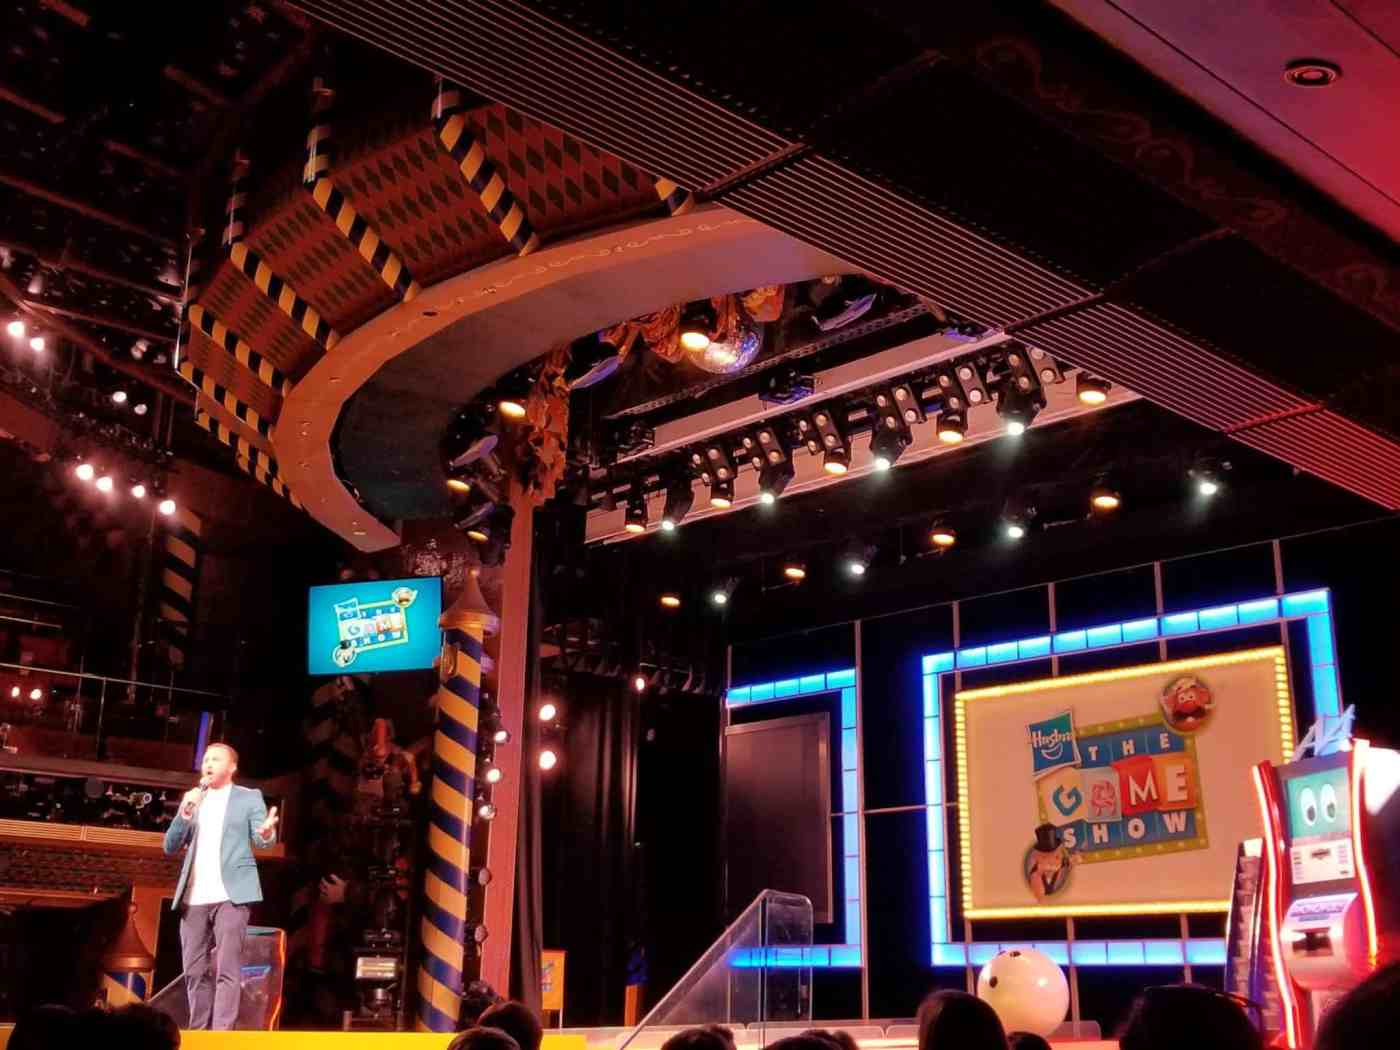 Hasbro, The Game Show aboard Carnival Liberty